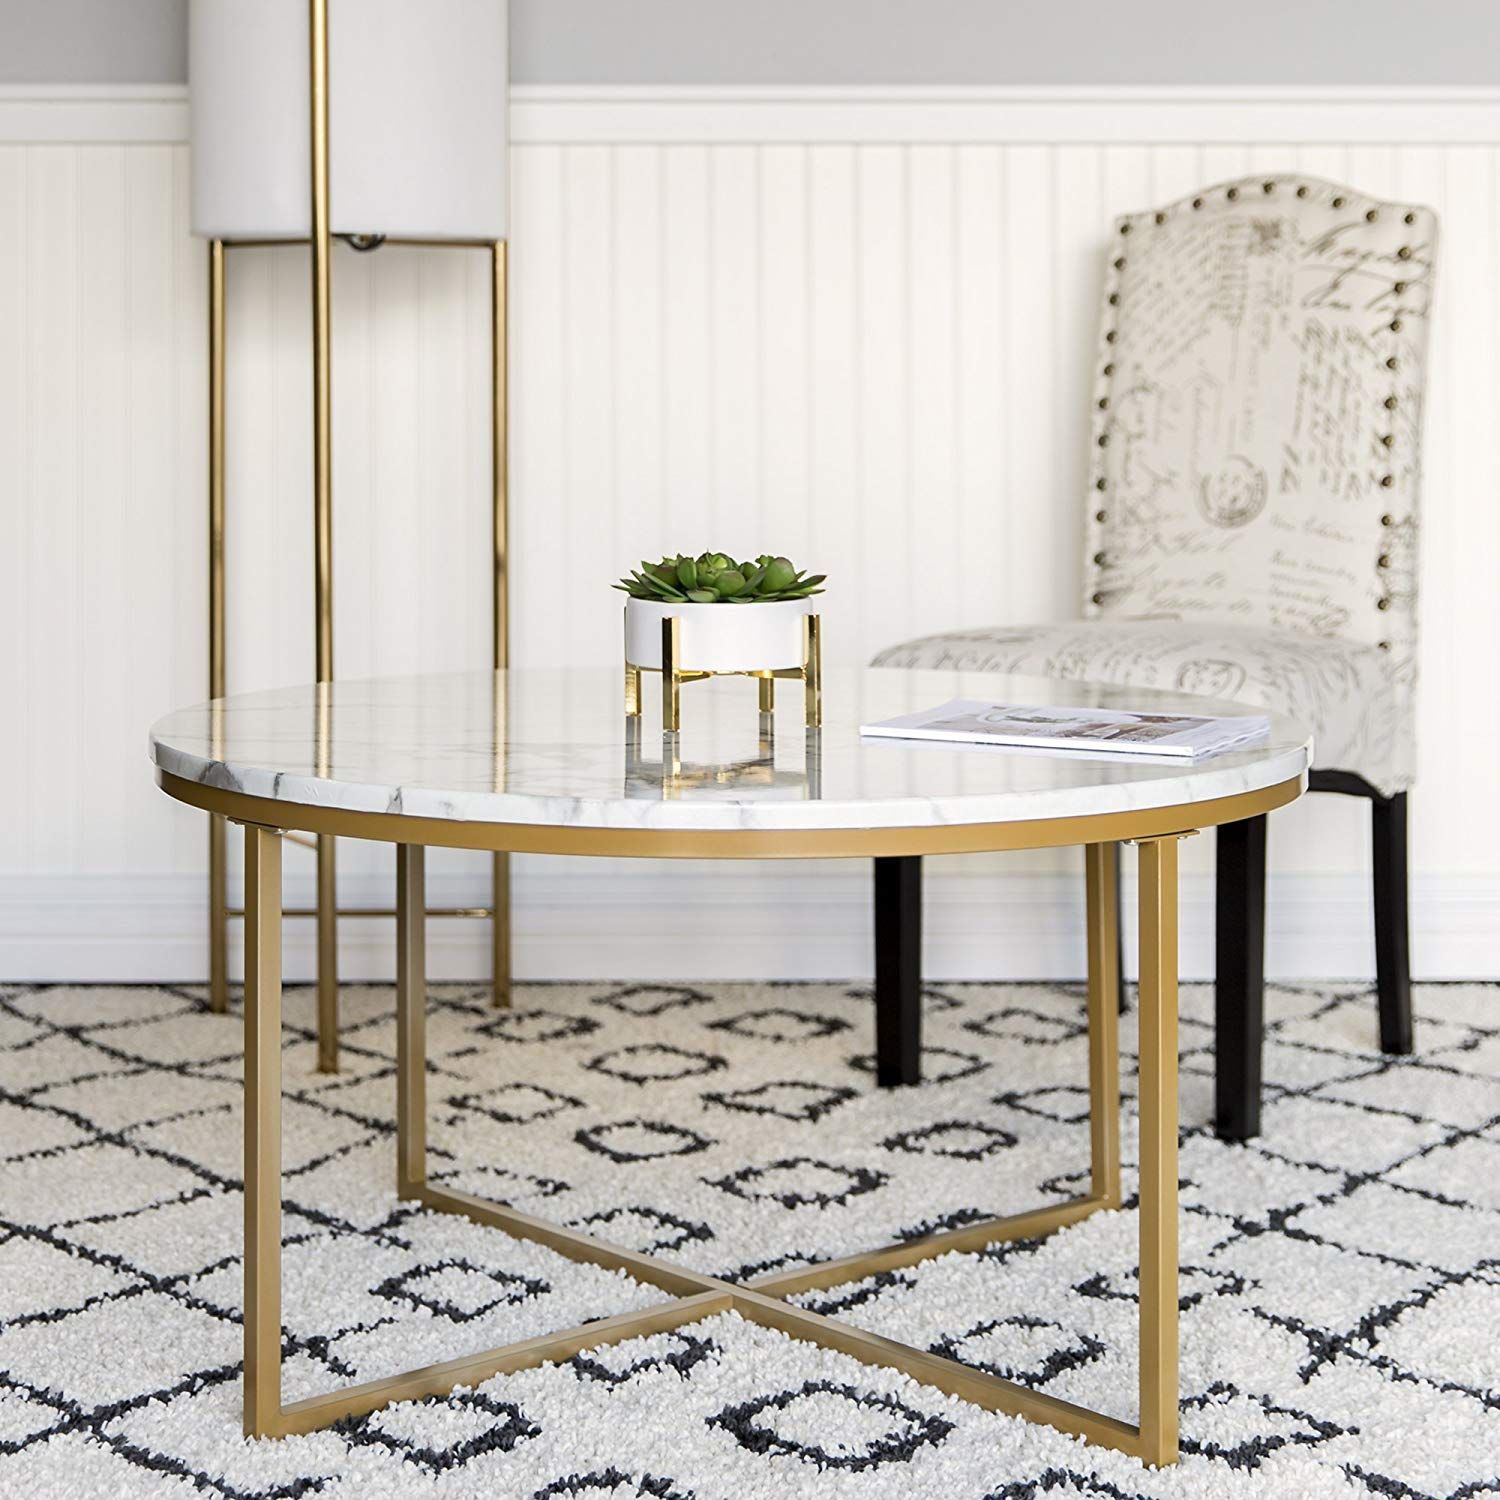 best choice products modern living room round accent table with screw legs side coffee metal frame faux marble top white gold kitchen dining counter height set lamp patio and